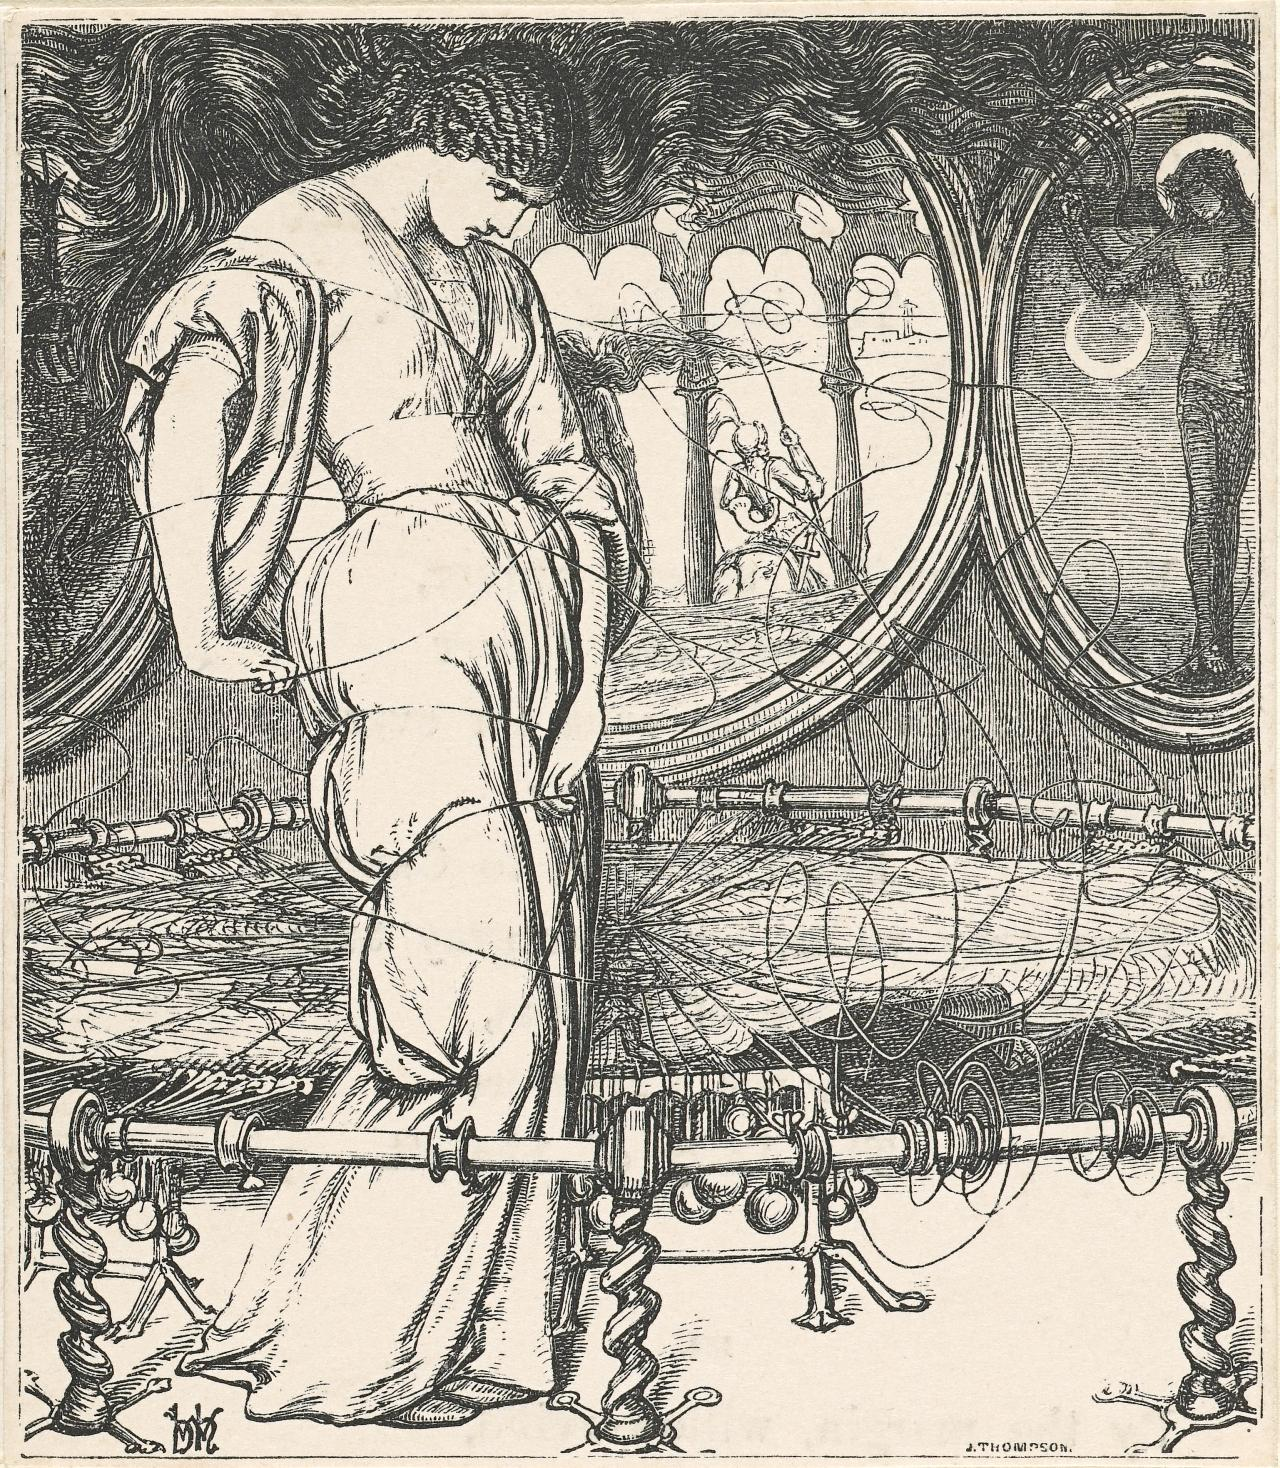 the breaking of the web william holman hunt s two early versions poem the lady of shalott fig 1 and his later engraving of the same subject fig 2 for edward moxon s famous 1857 edition of tennyson ibid pp